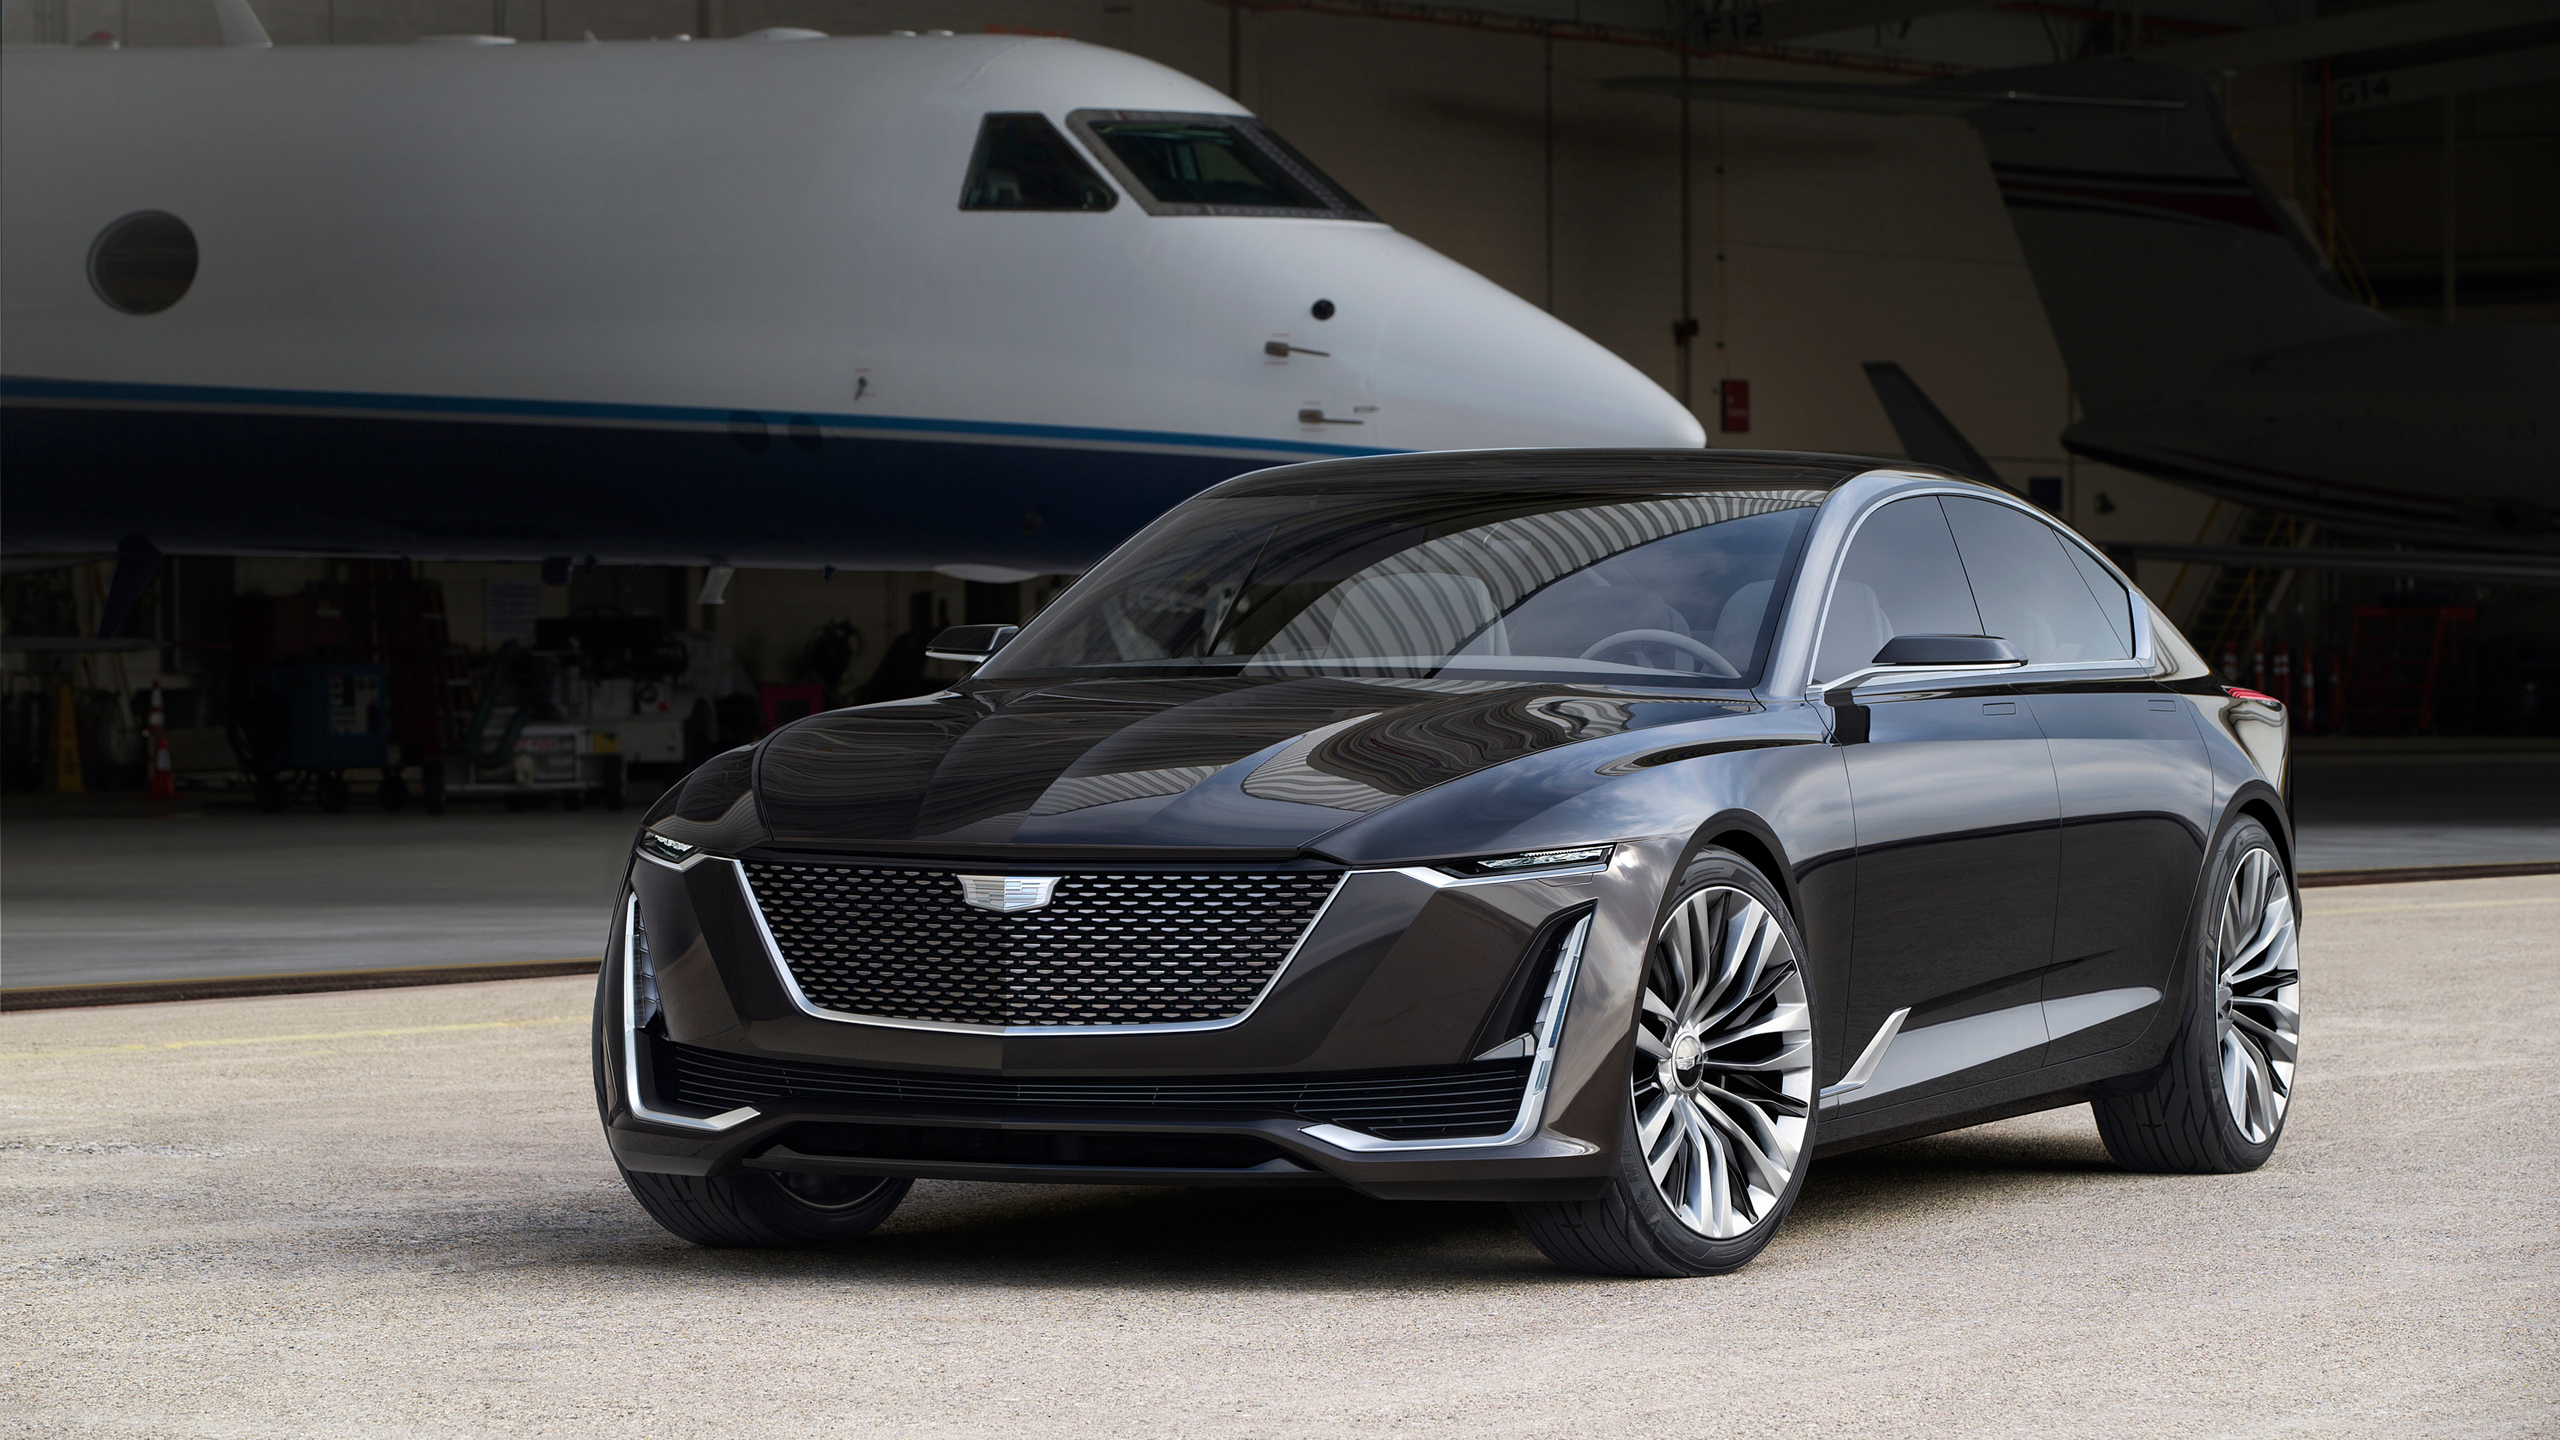 2016 cadillac escala concept 2 wallpaper hd car wallpapers. Cars Review. Best American Auto & Cars Review